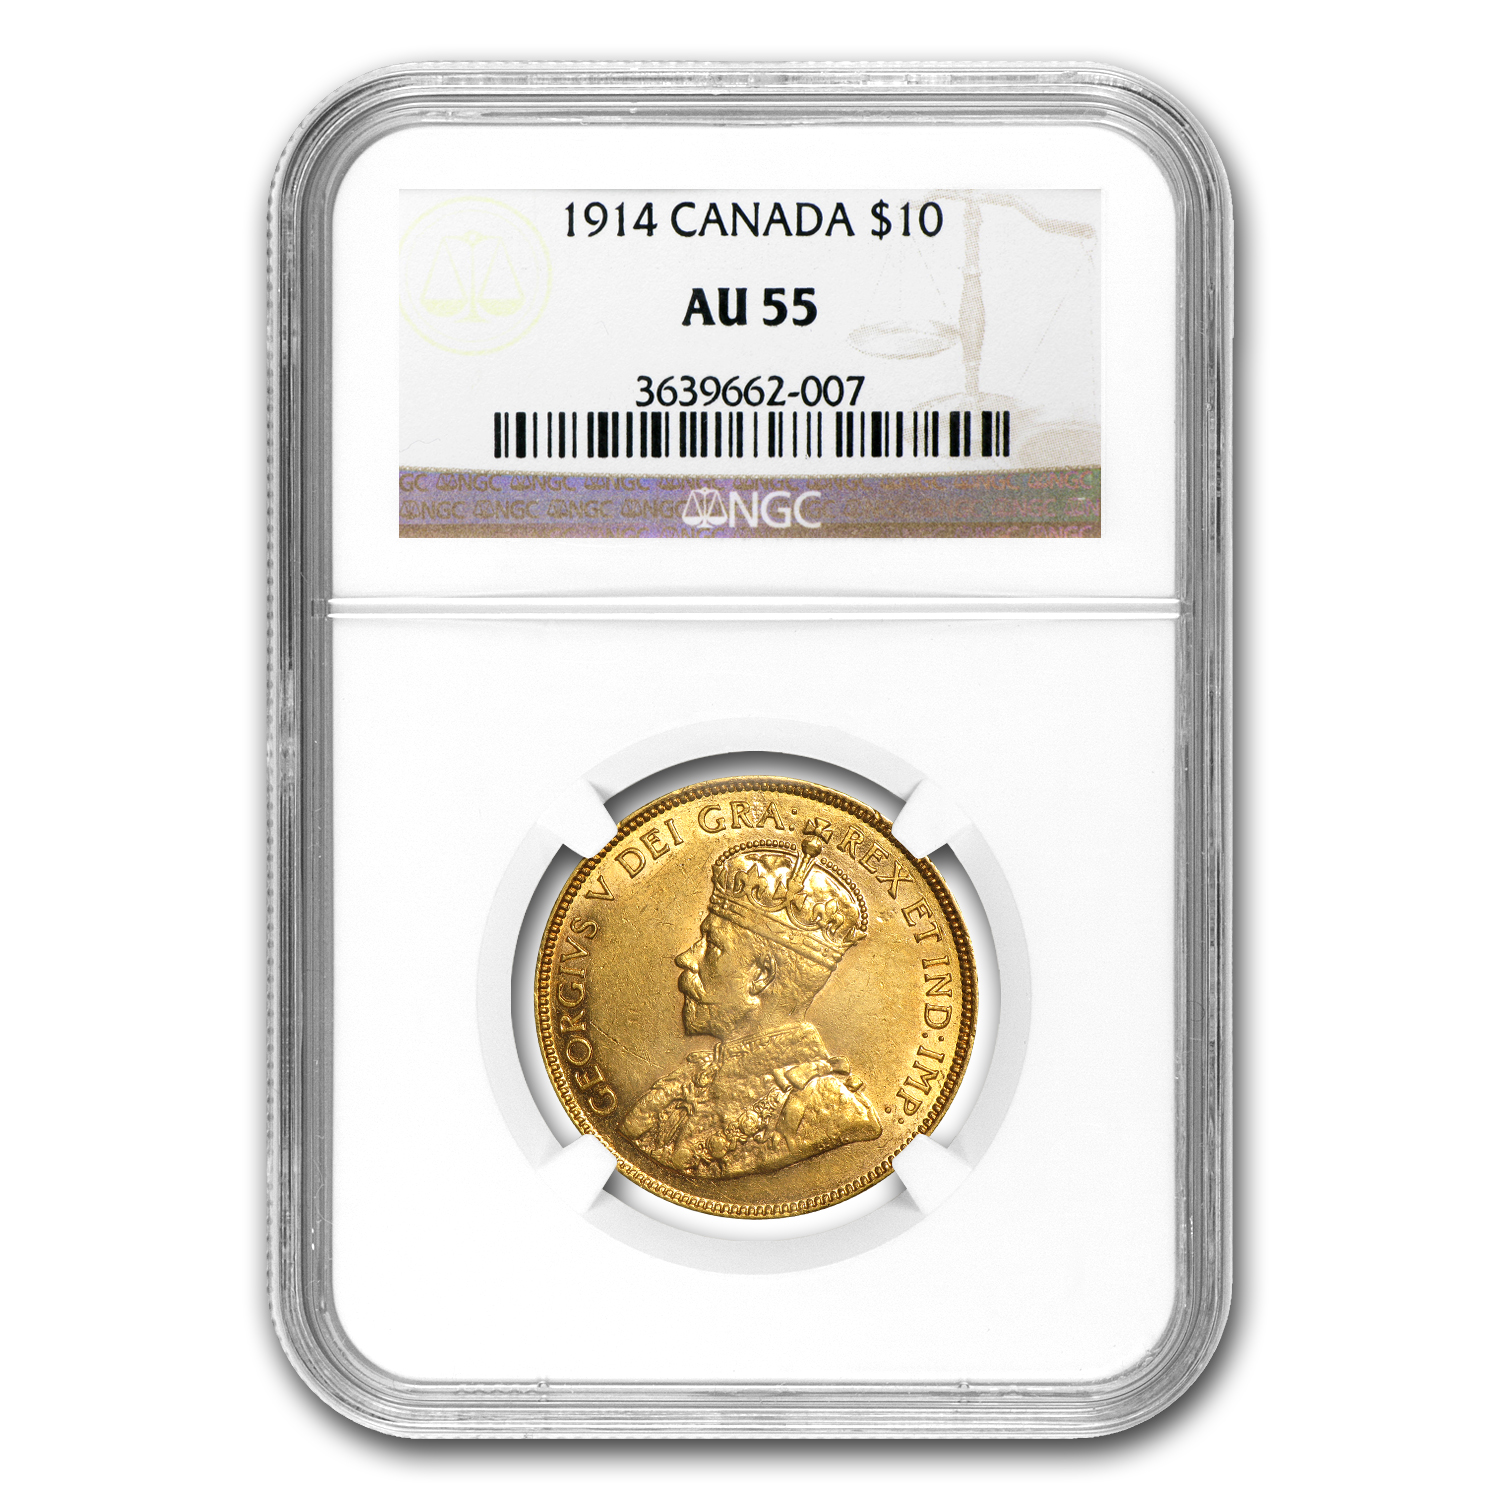 1914 Canada Gold $10 AU-55 NGC